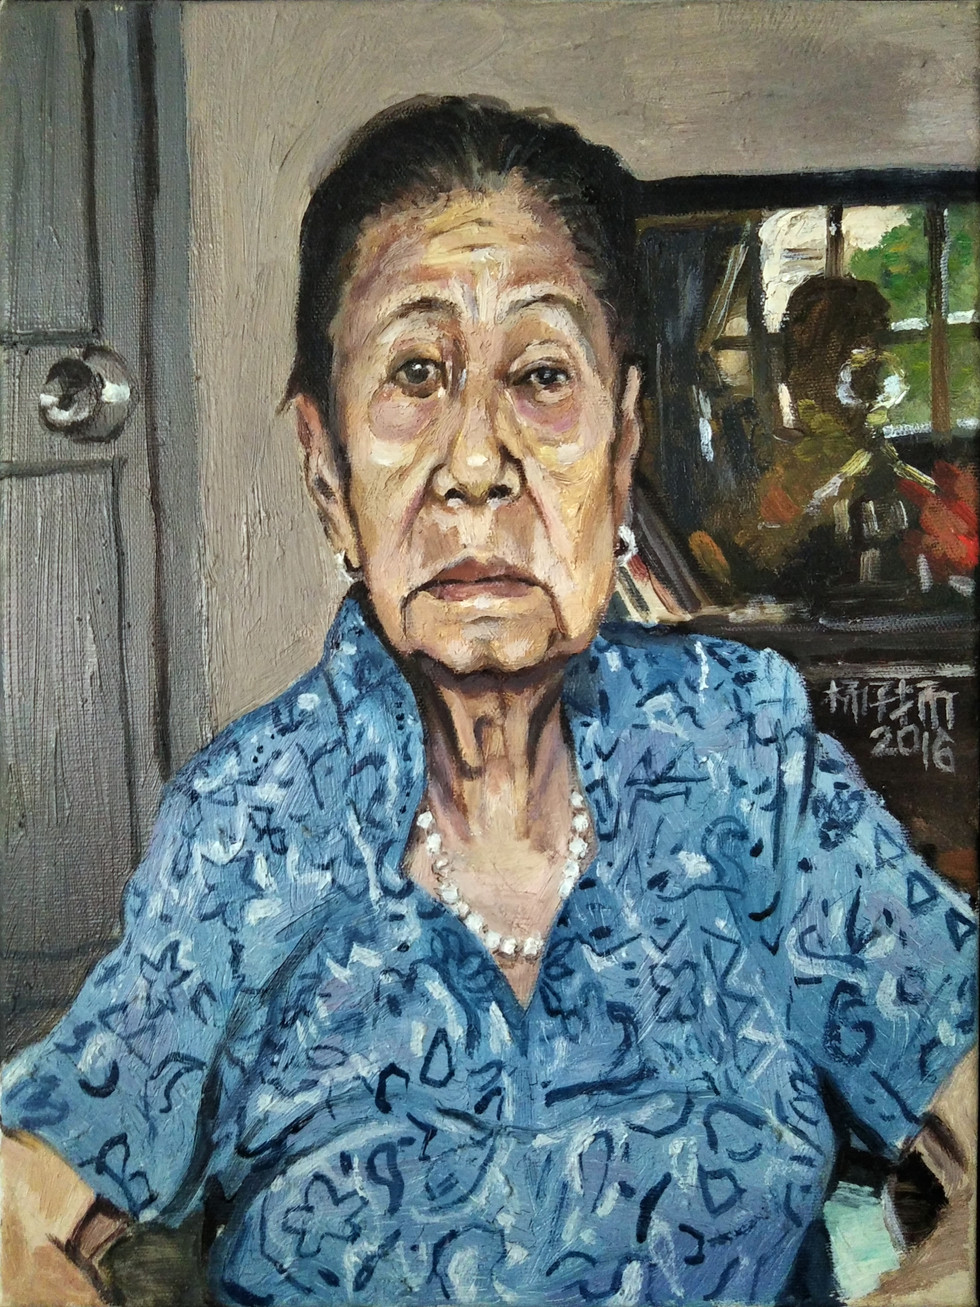 Ah Ma, 2016, Oil on Canvas, 51 x 41cm, Artist's Personal Collection